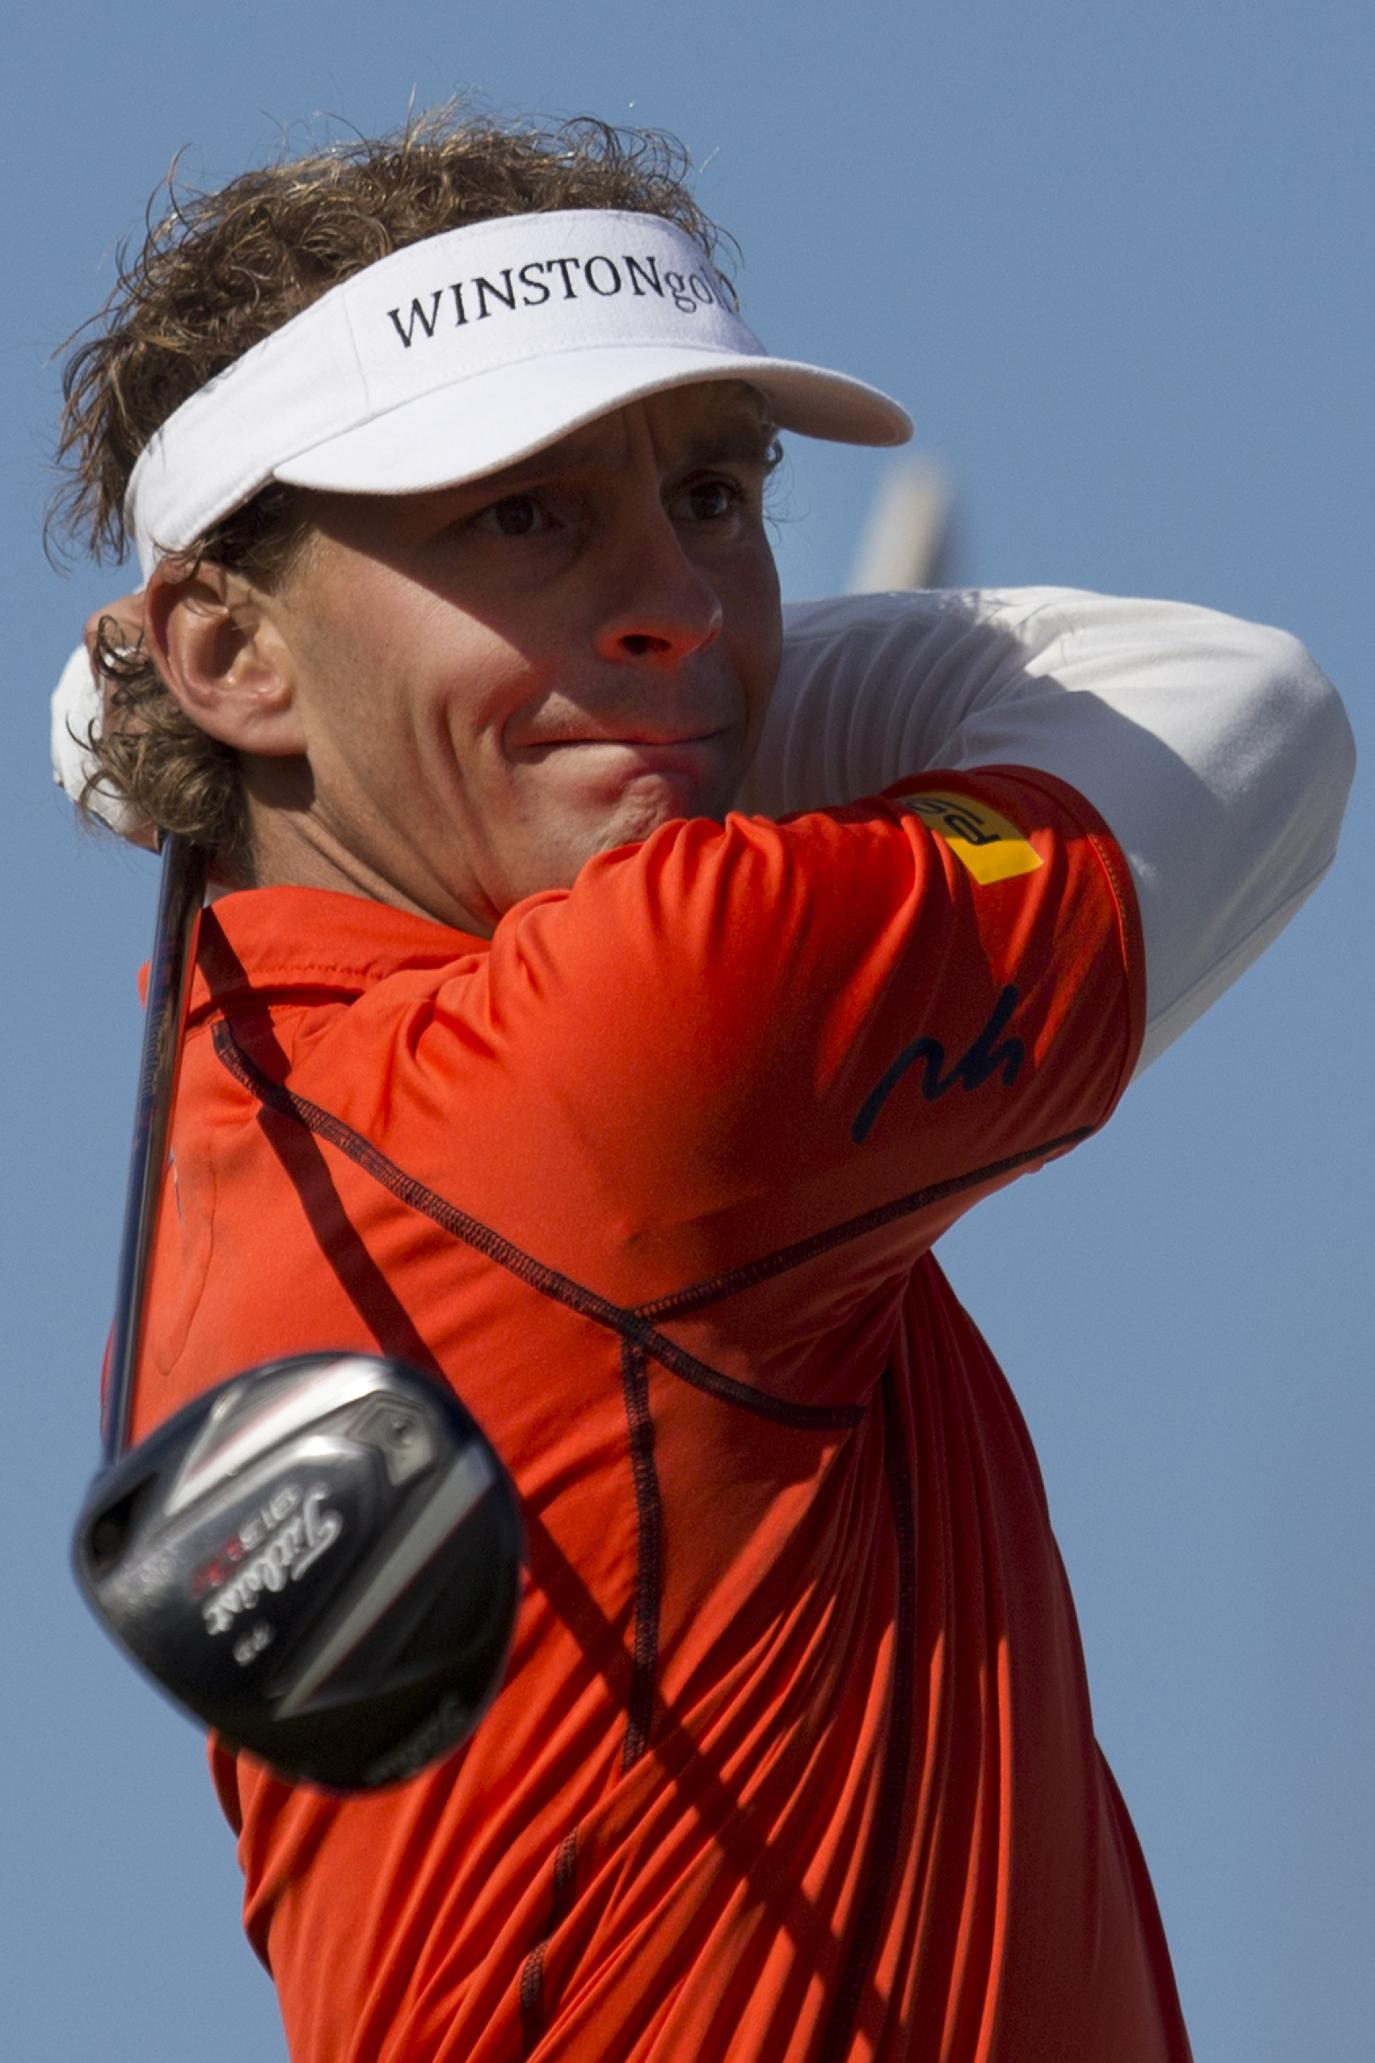 Netherlands' Joost Luiten tees off on hole two during the final round of the KLM Open men's golf tournament in the beach resort of Zandvoort, western Netherlands, Sunday, Sept. 15, 2013